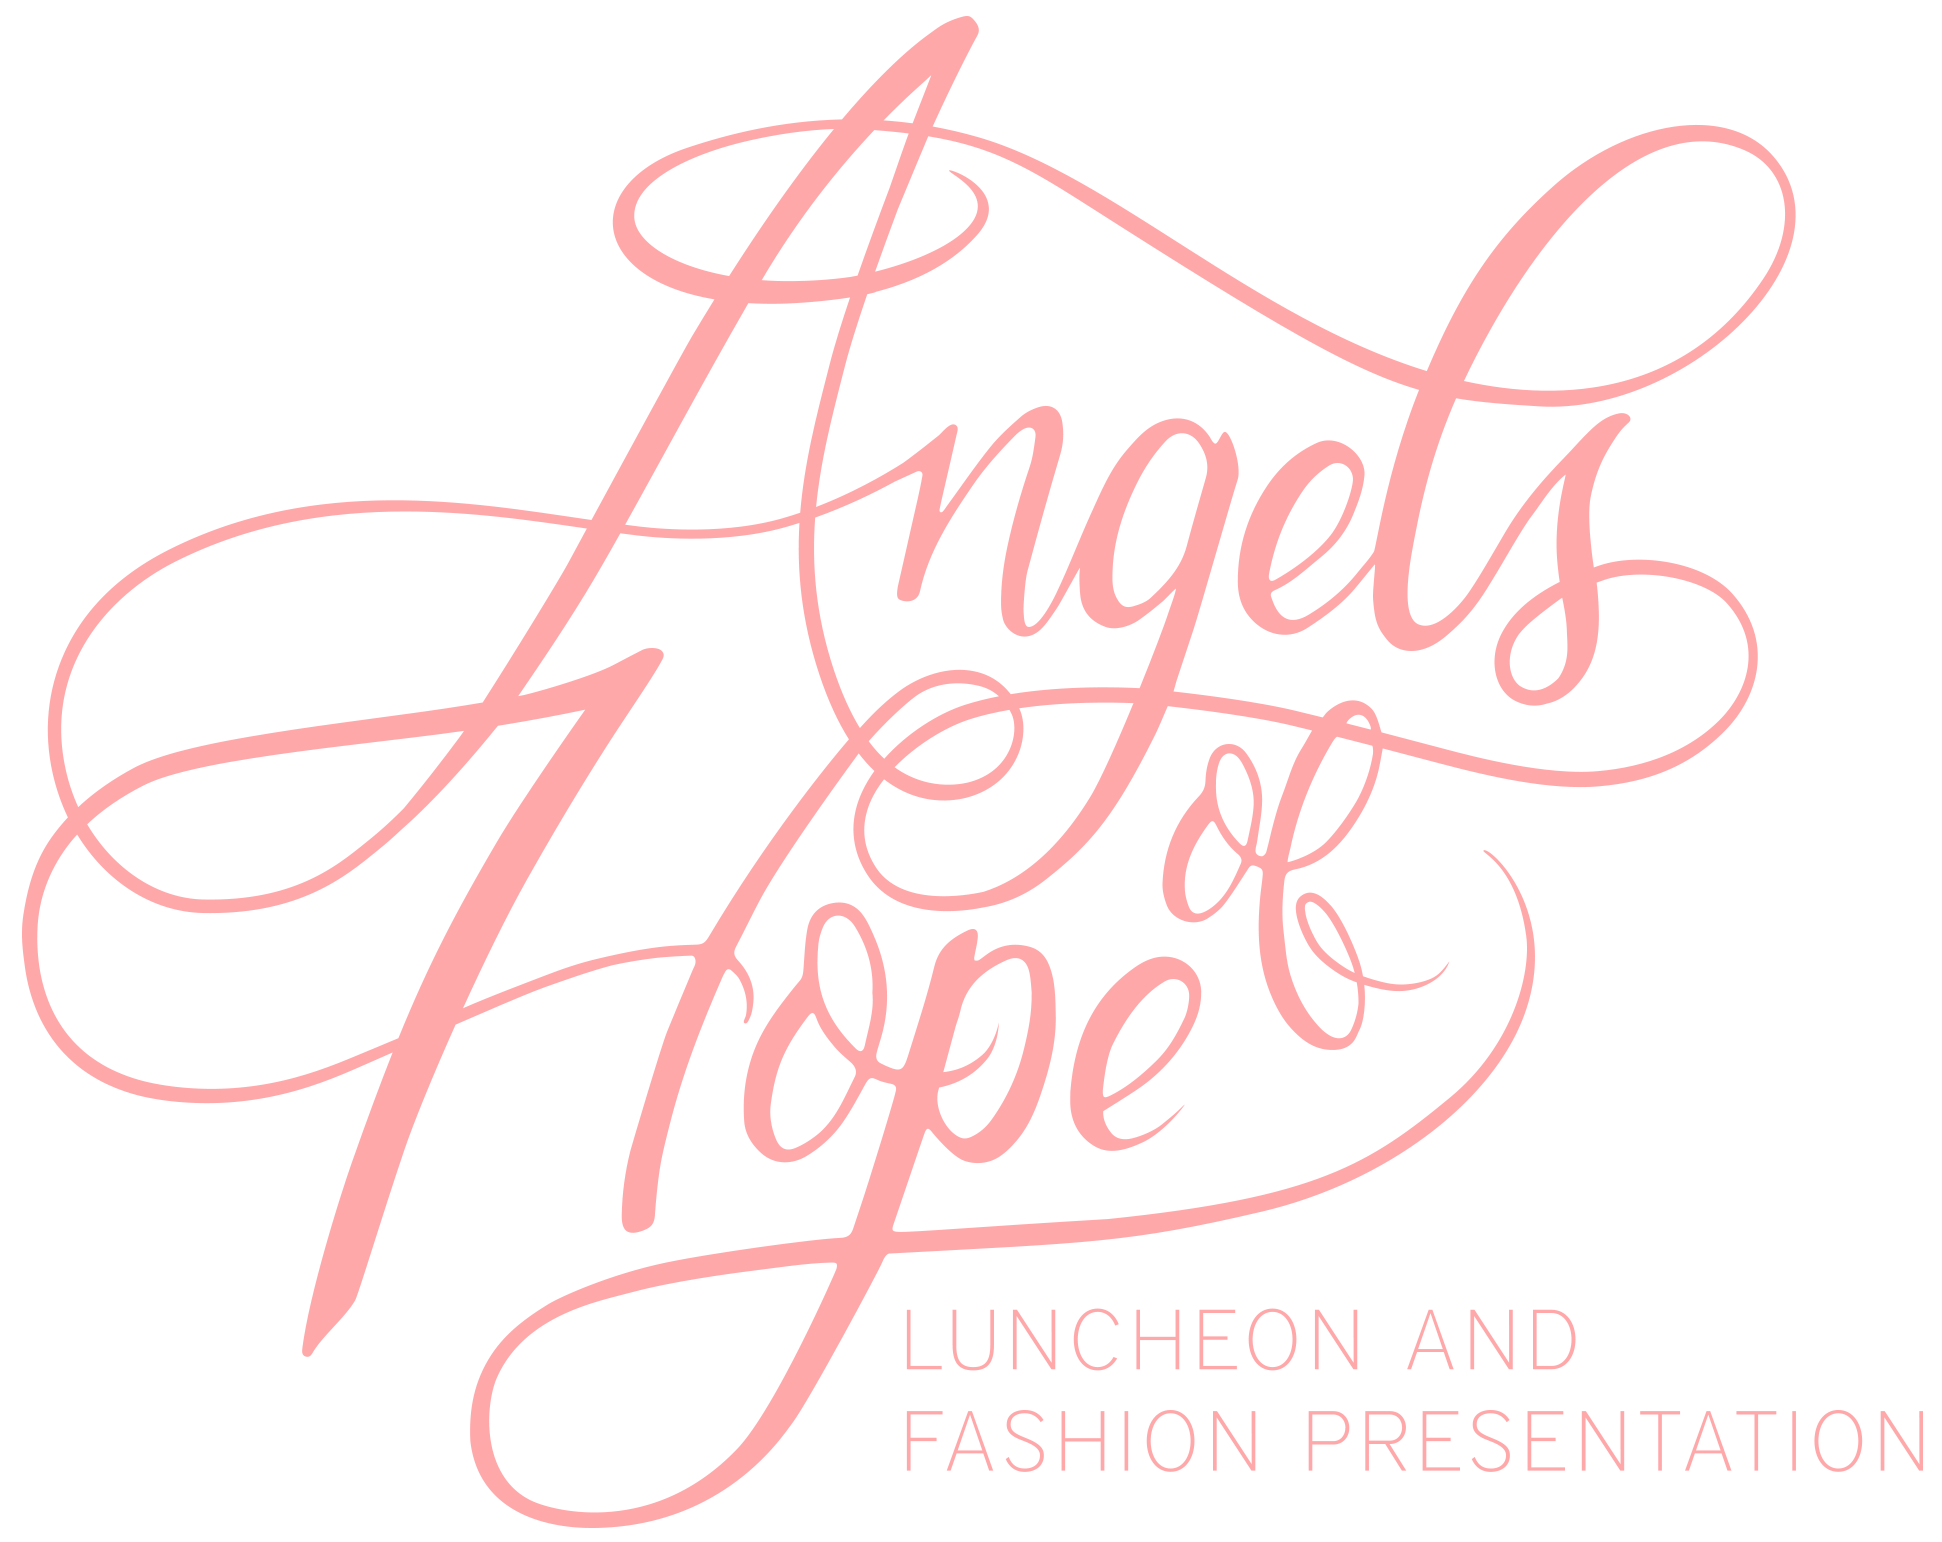 Angels of Hope Luncheon and Fashion Presentation